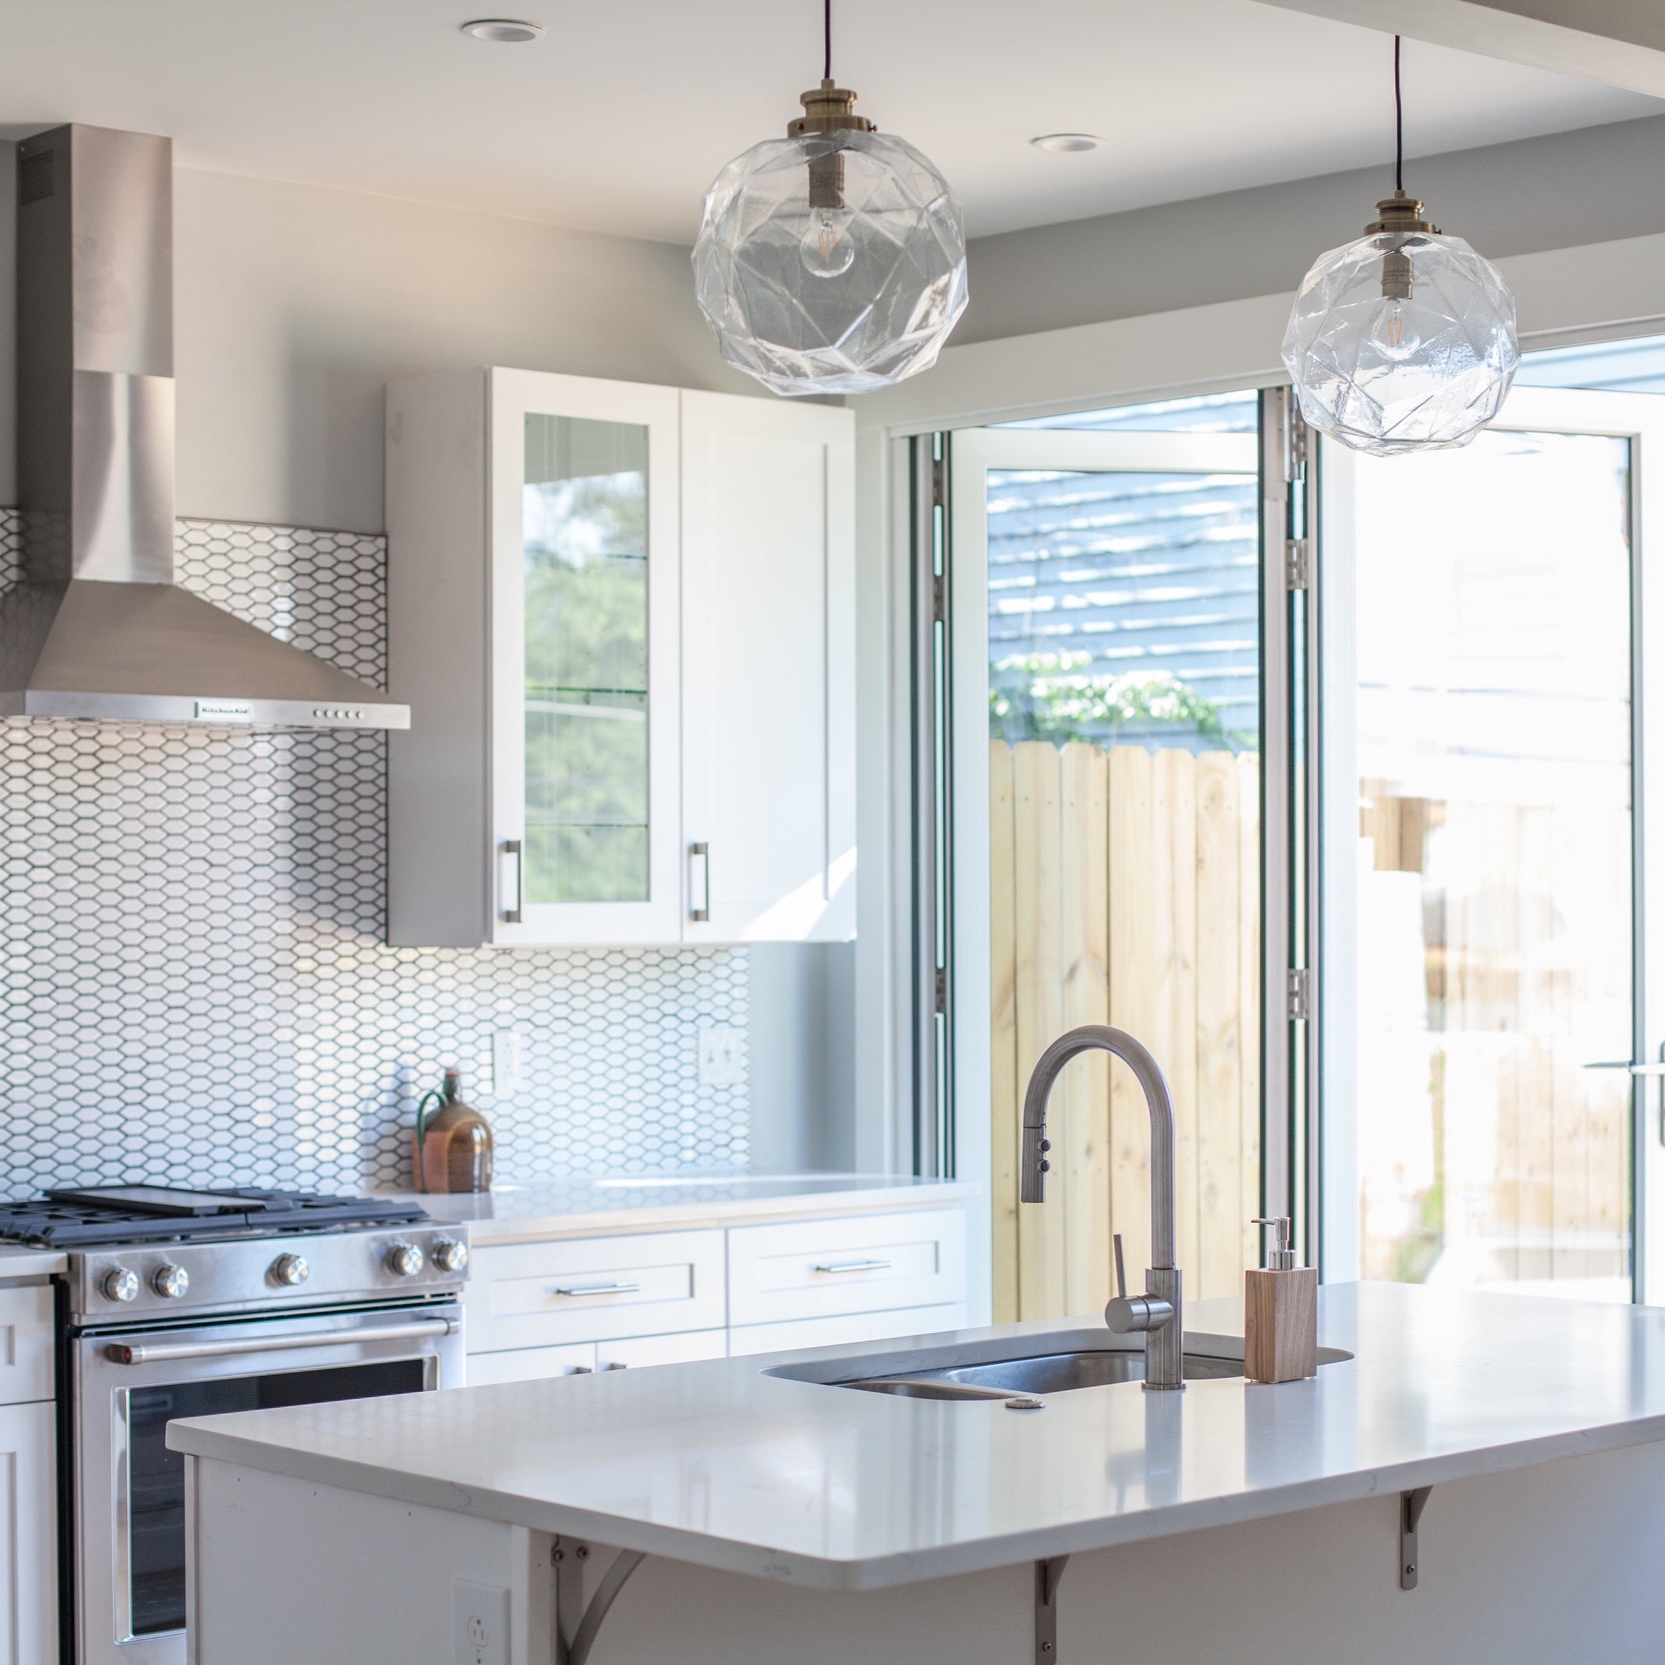 HIGHLAND PARK  Full gut renovation of entire home  Architectural design, finishes & fixtures